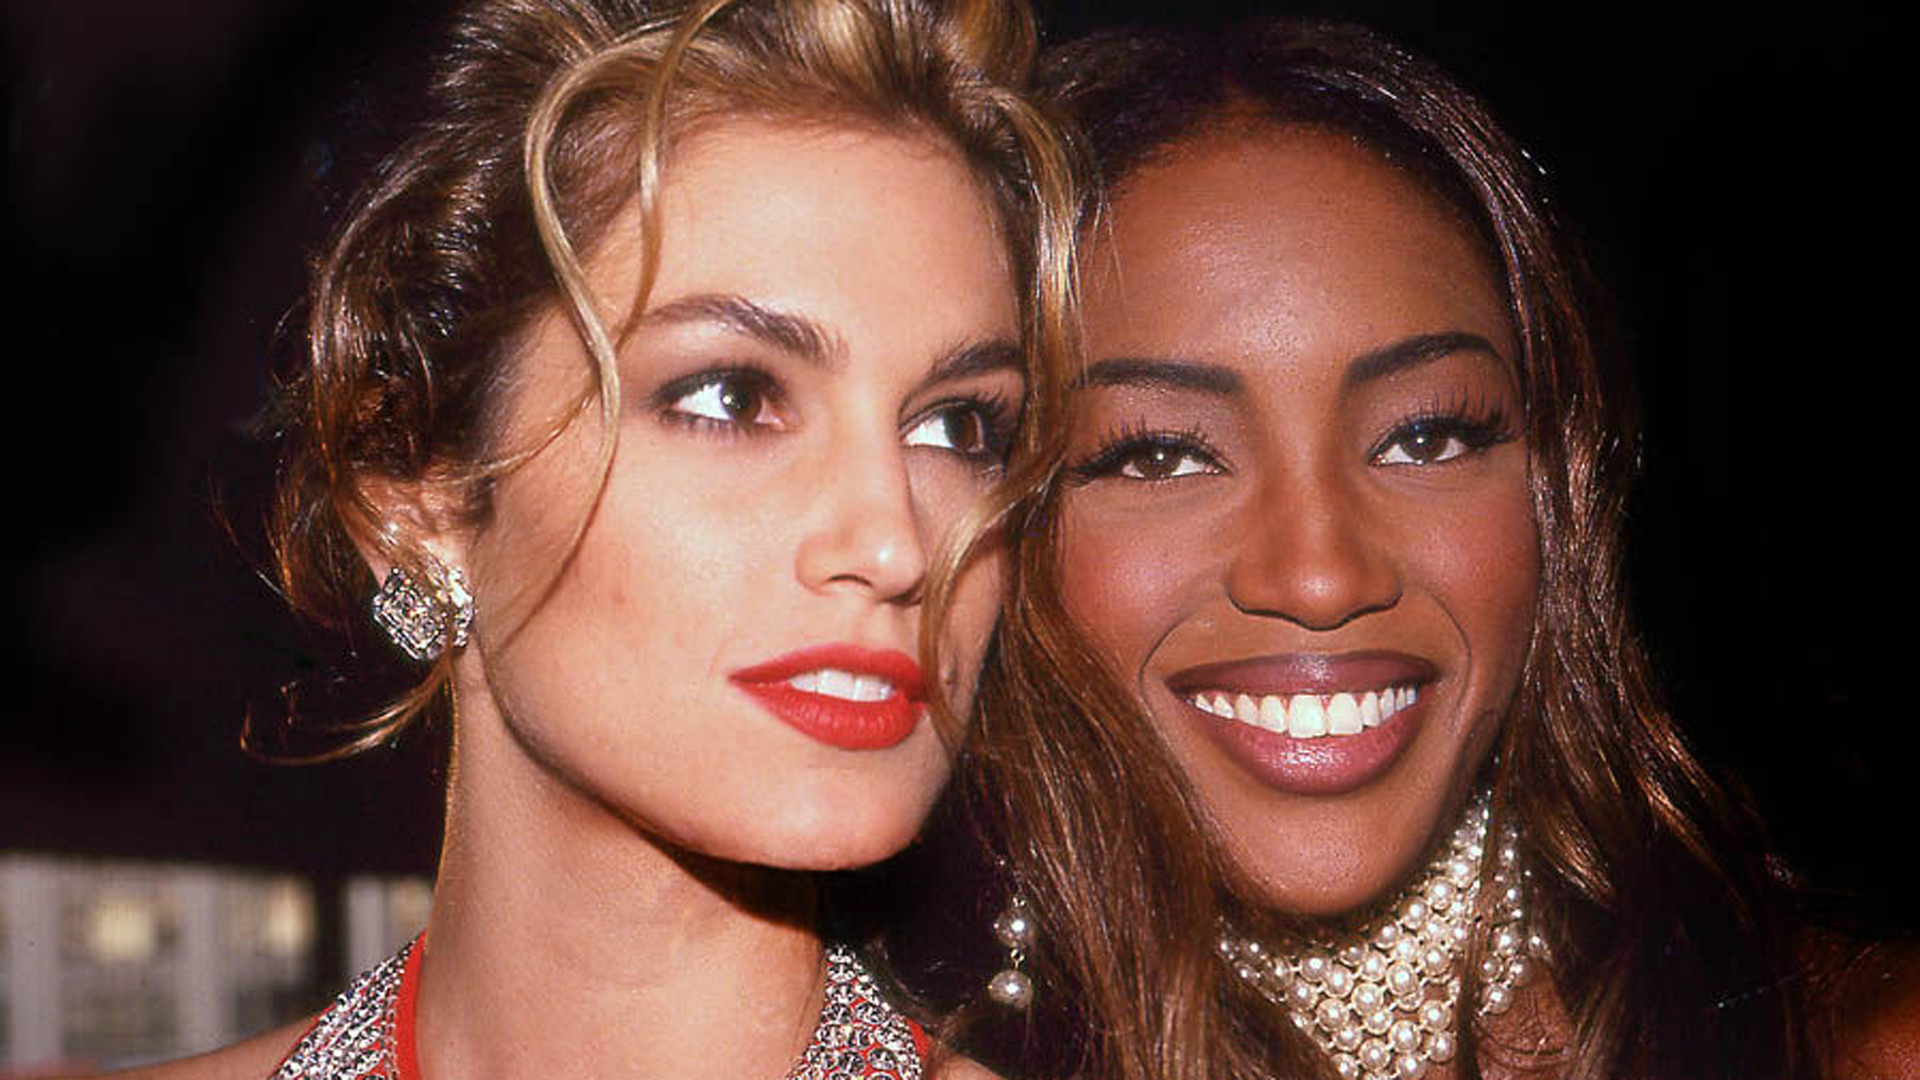 What the original supermodels look like today